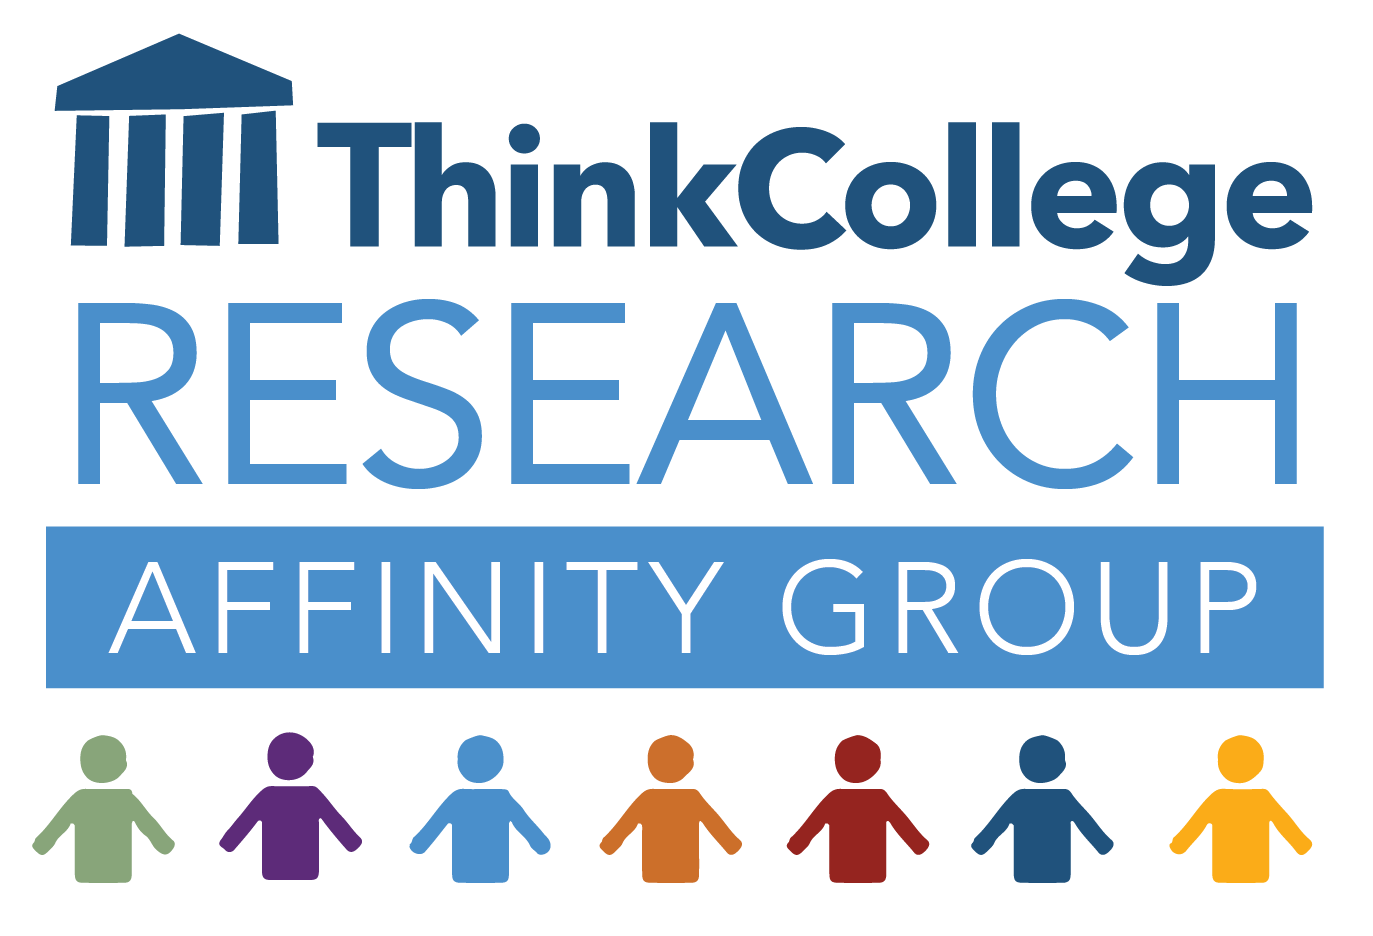 Research Affinity Group Logo